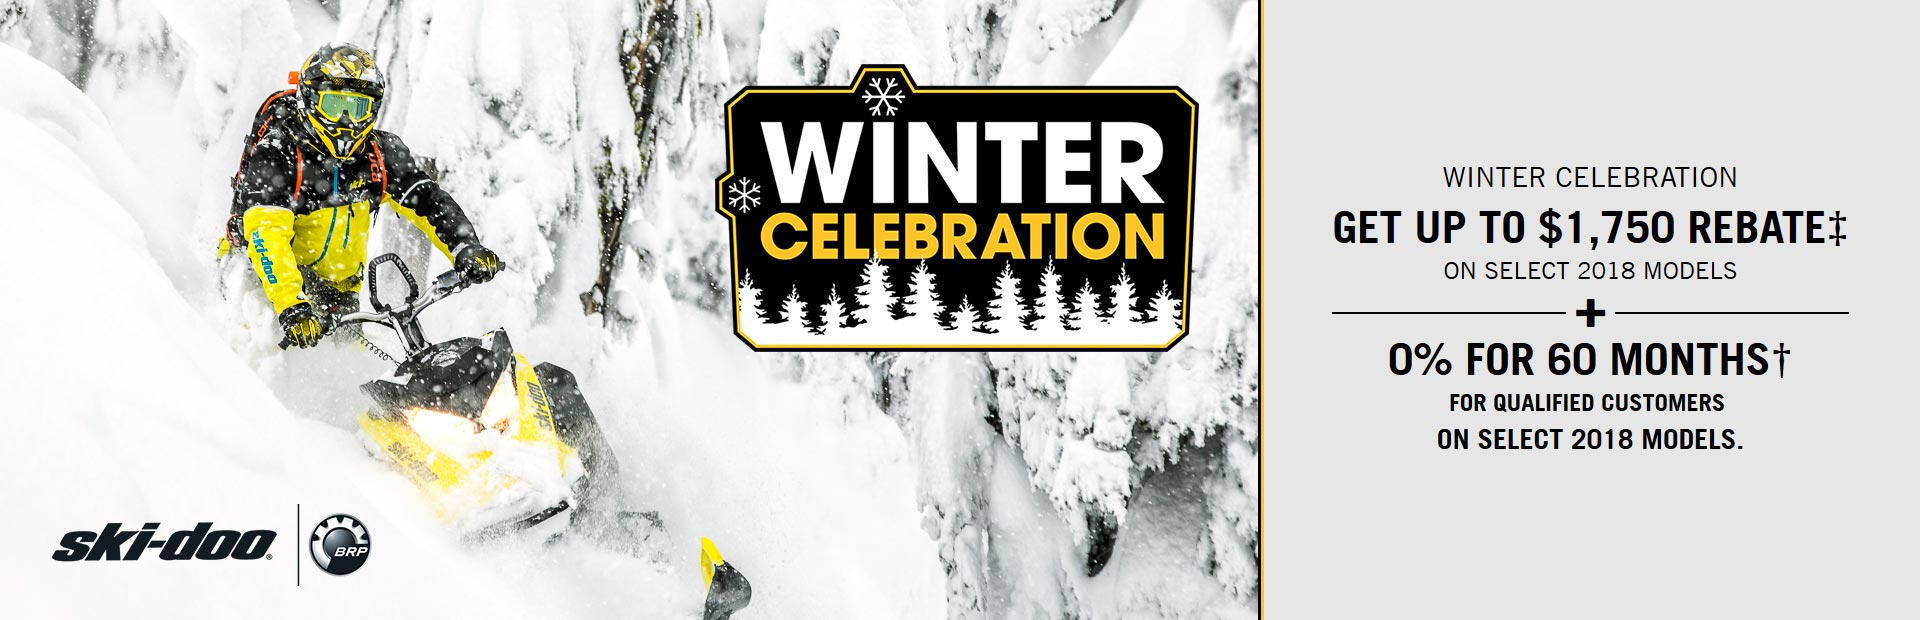 Ski-Doo: Winter Celebration